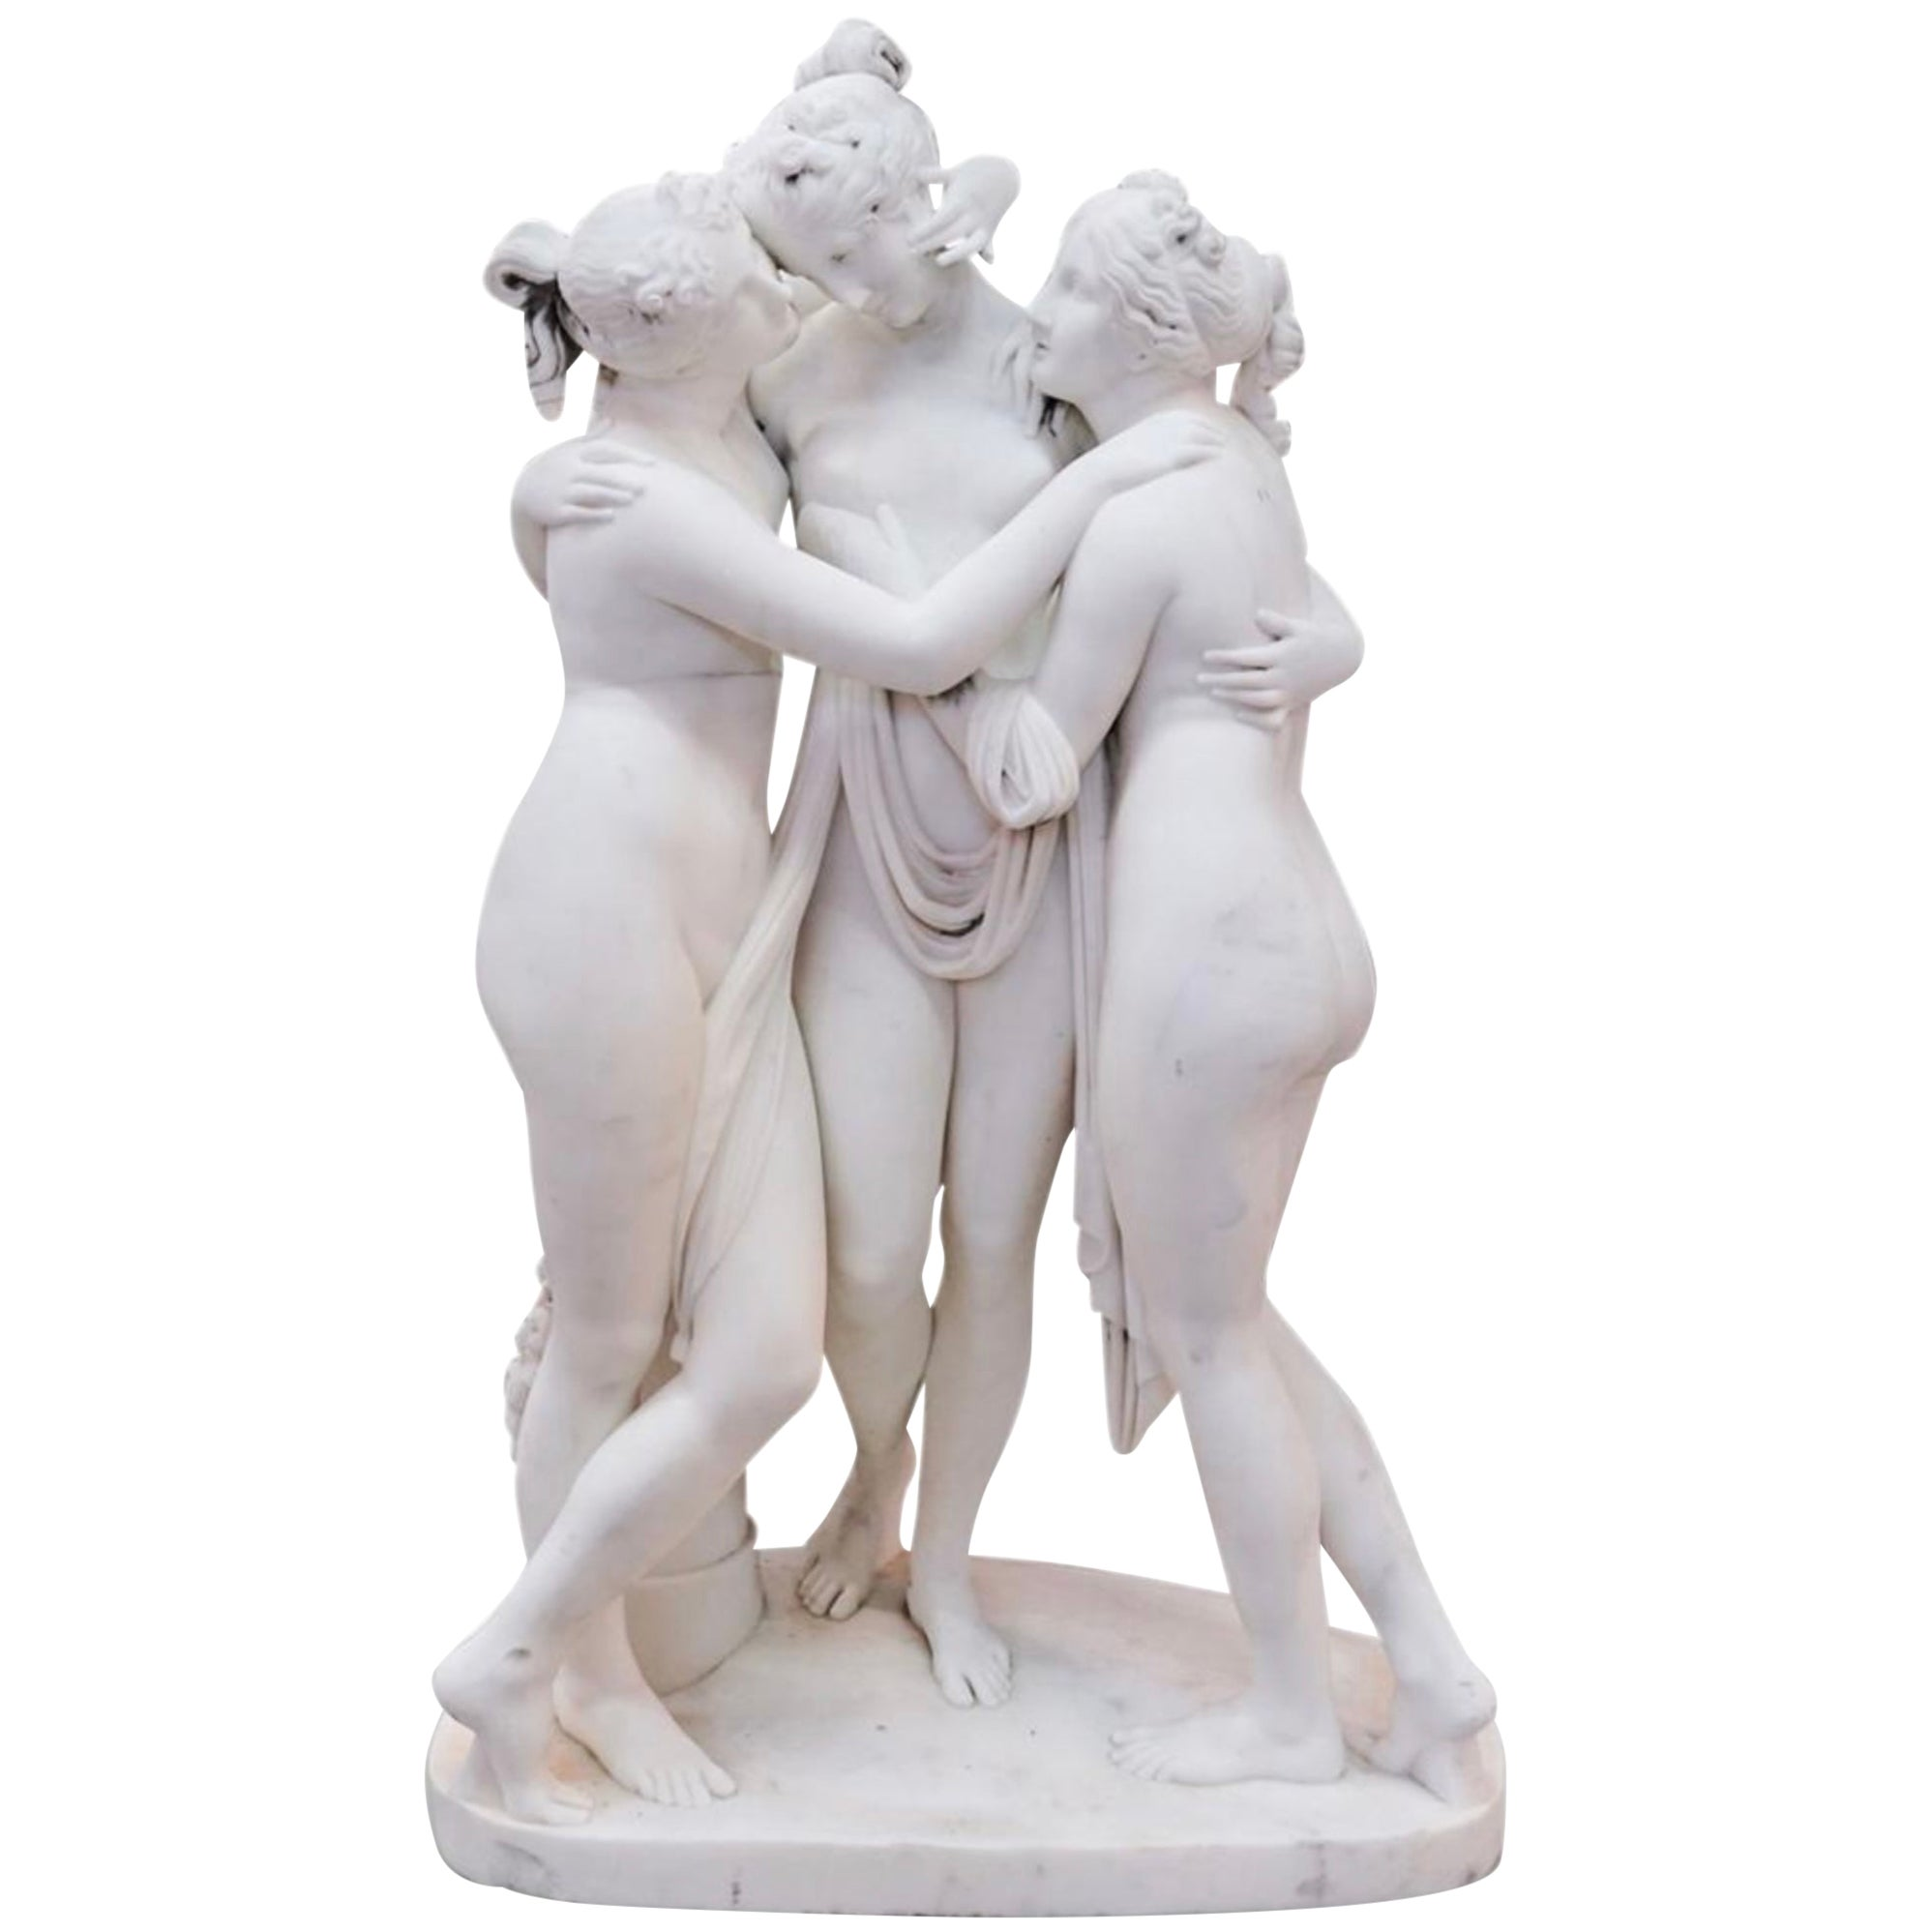 19th Century Neoclassical Marble Sculpture of the Three Graces after Canova